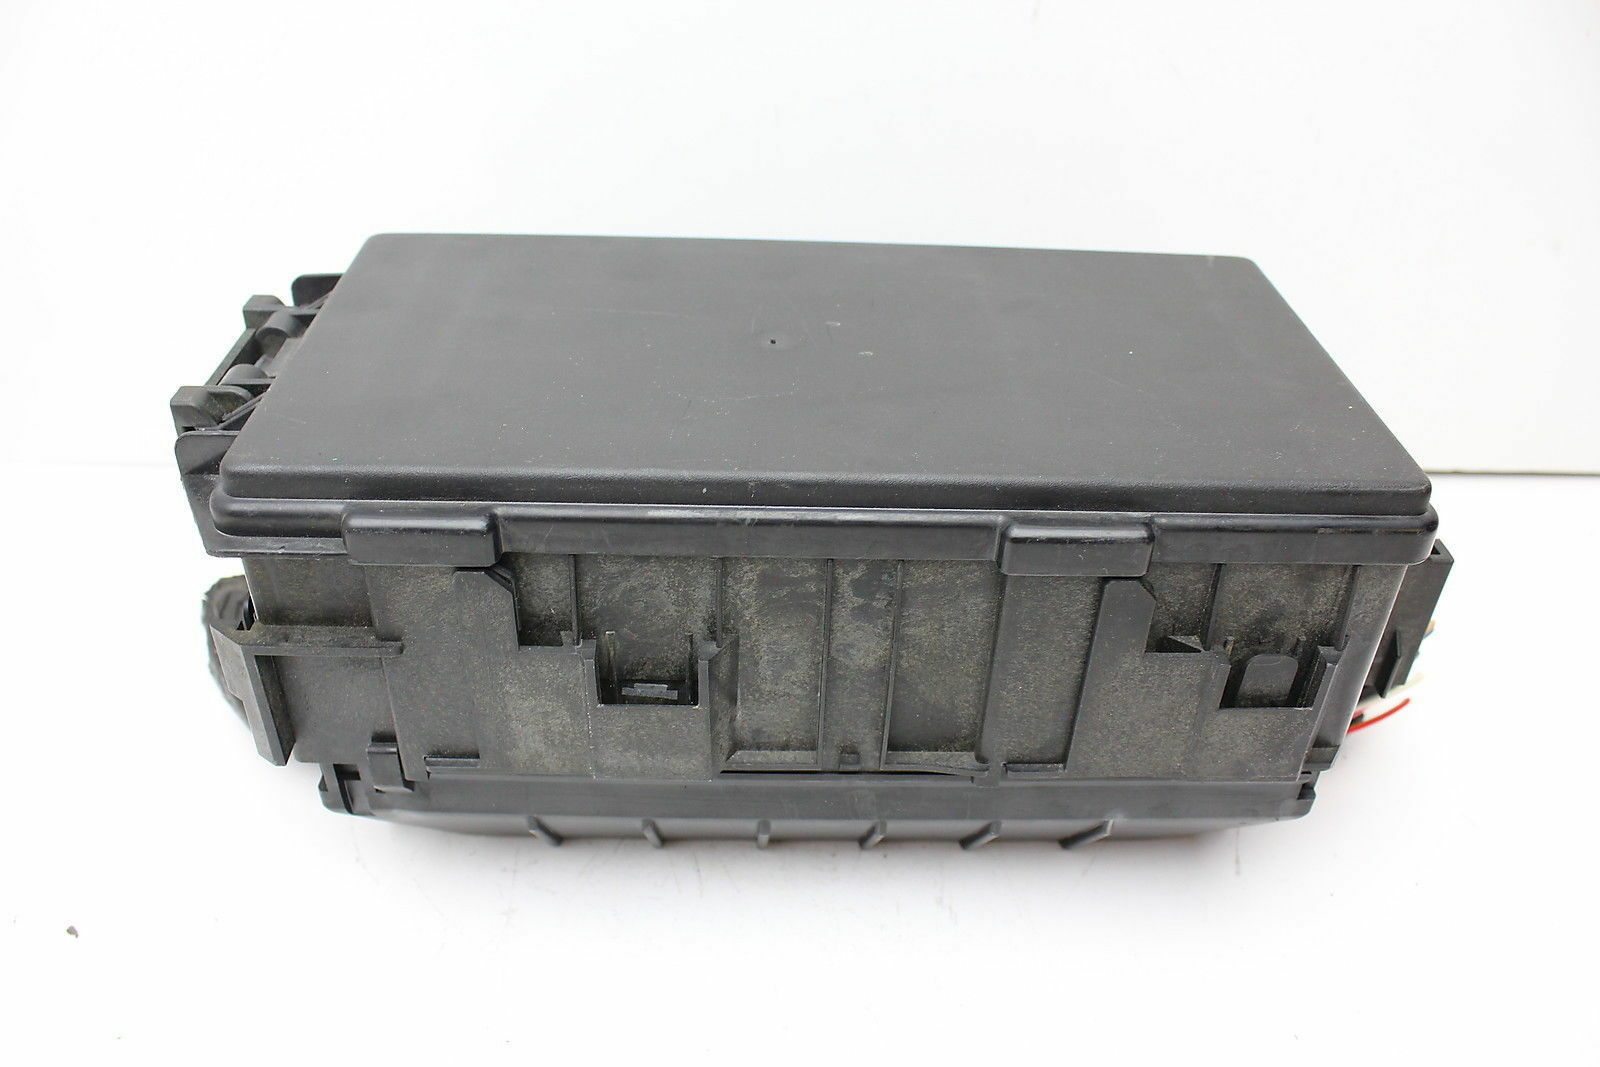 hight resolution of 99 ford windstar xl34 14a003 a fusebox fuse box relay unit module l821 for sale